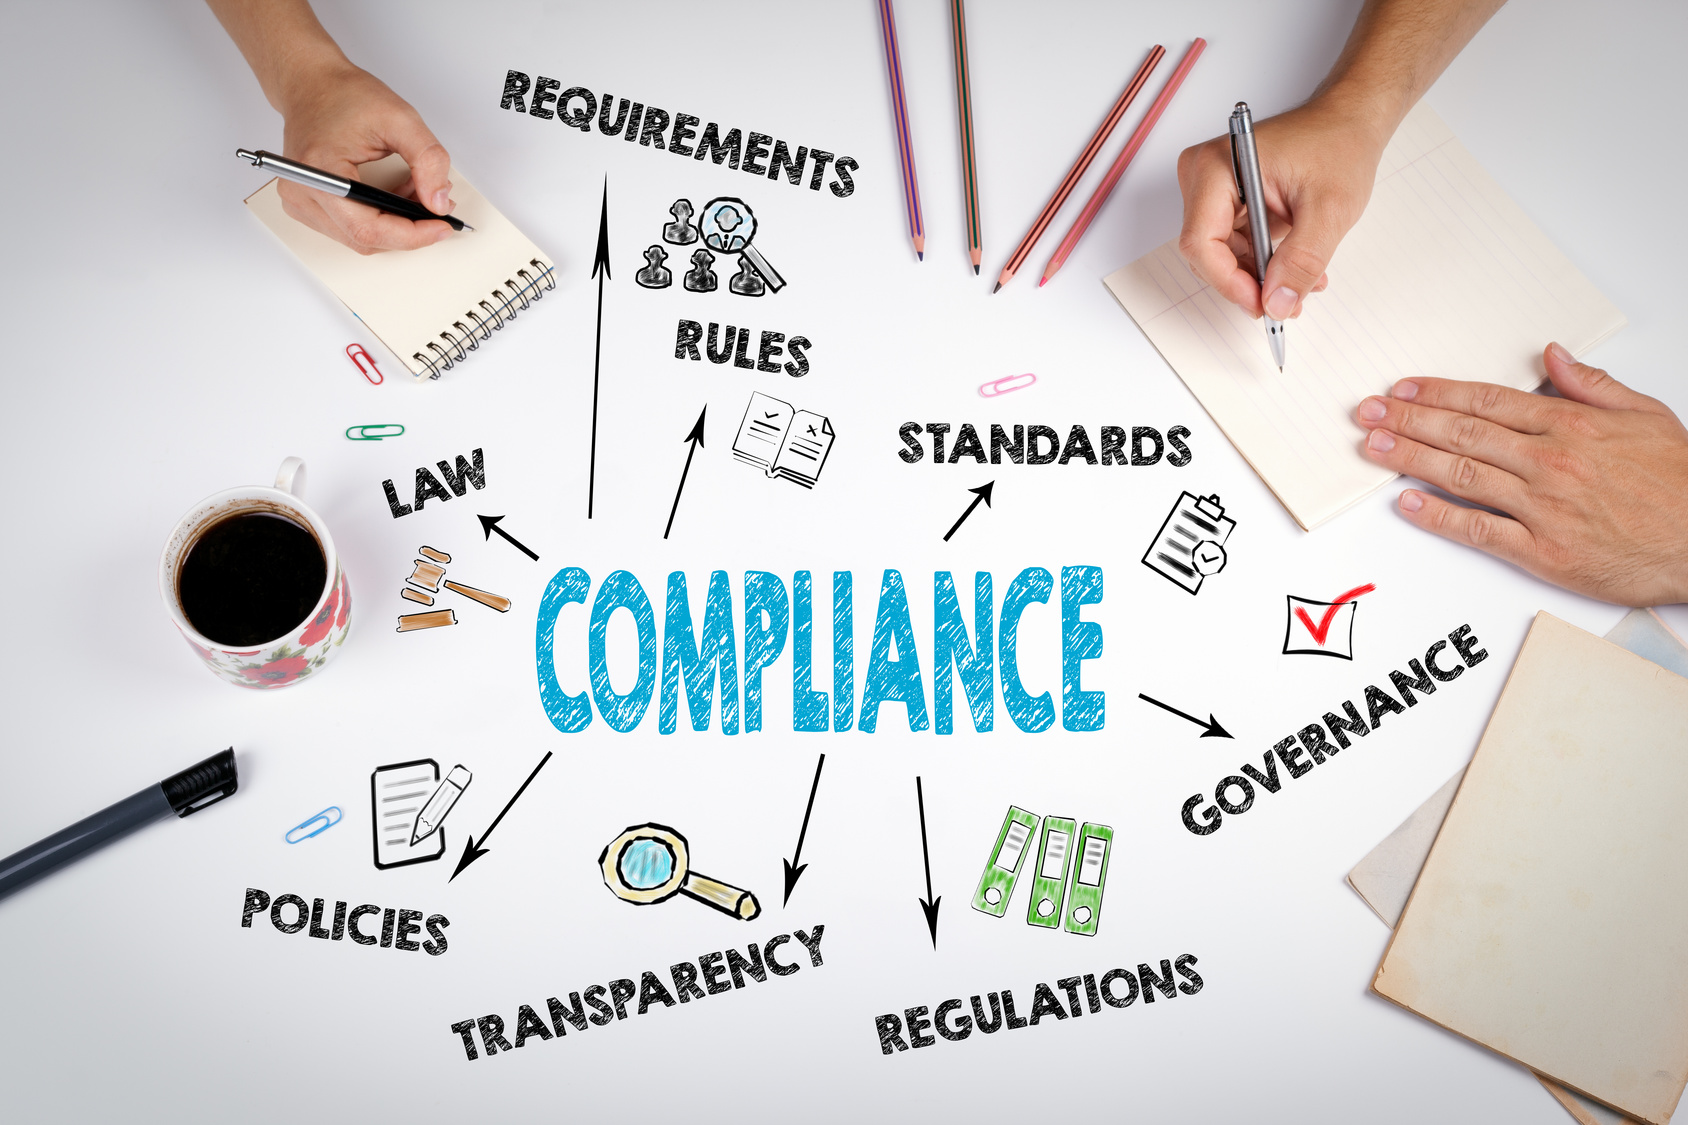 Digital Trust: Why Enterprise IT Compliance Matters